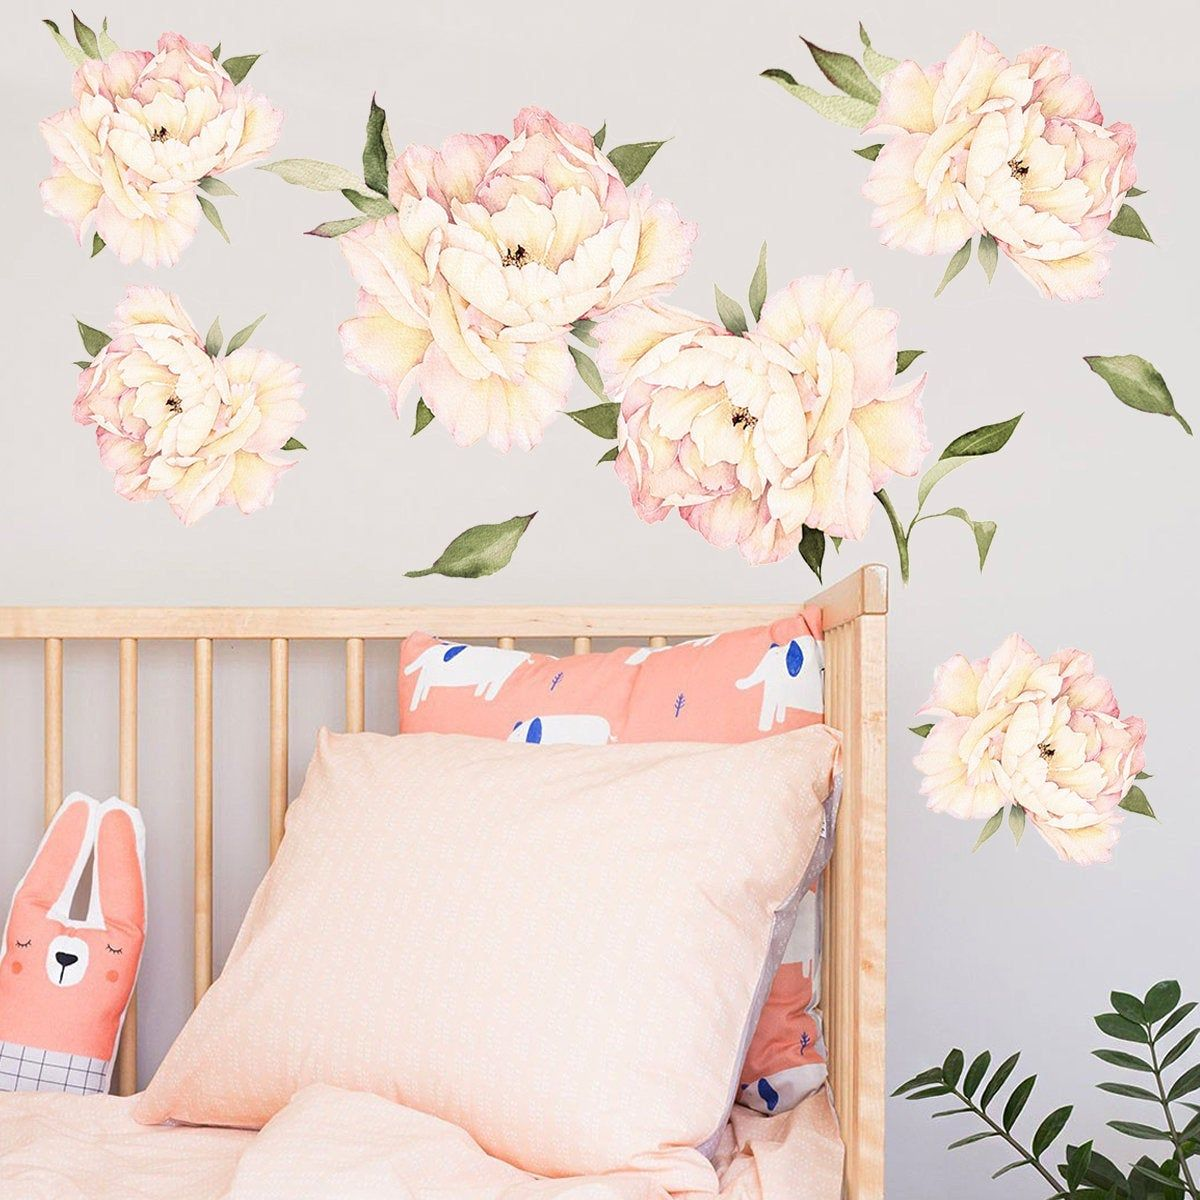 Floral Wall Decals Peony Flowers Wall Stickers Vintage Peach Watercolor Peony Wall Stickers Peel And Stick Removable Stickers Nursery Wall Decals Flower Wall Stickers Flower Wall